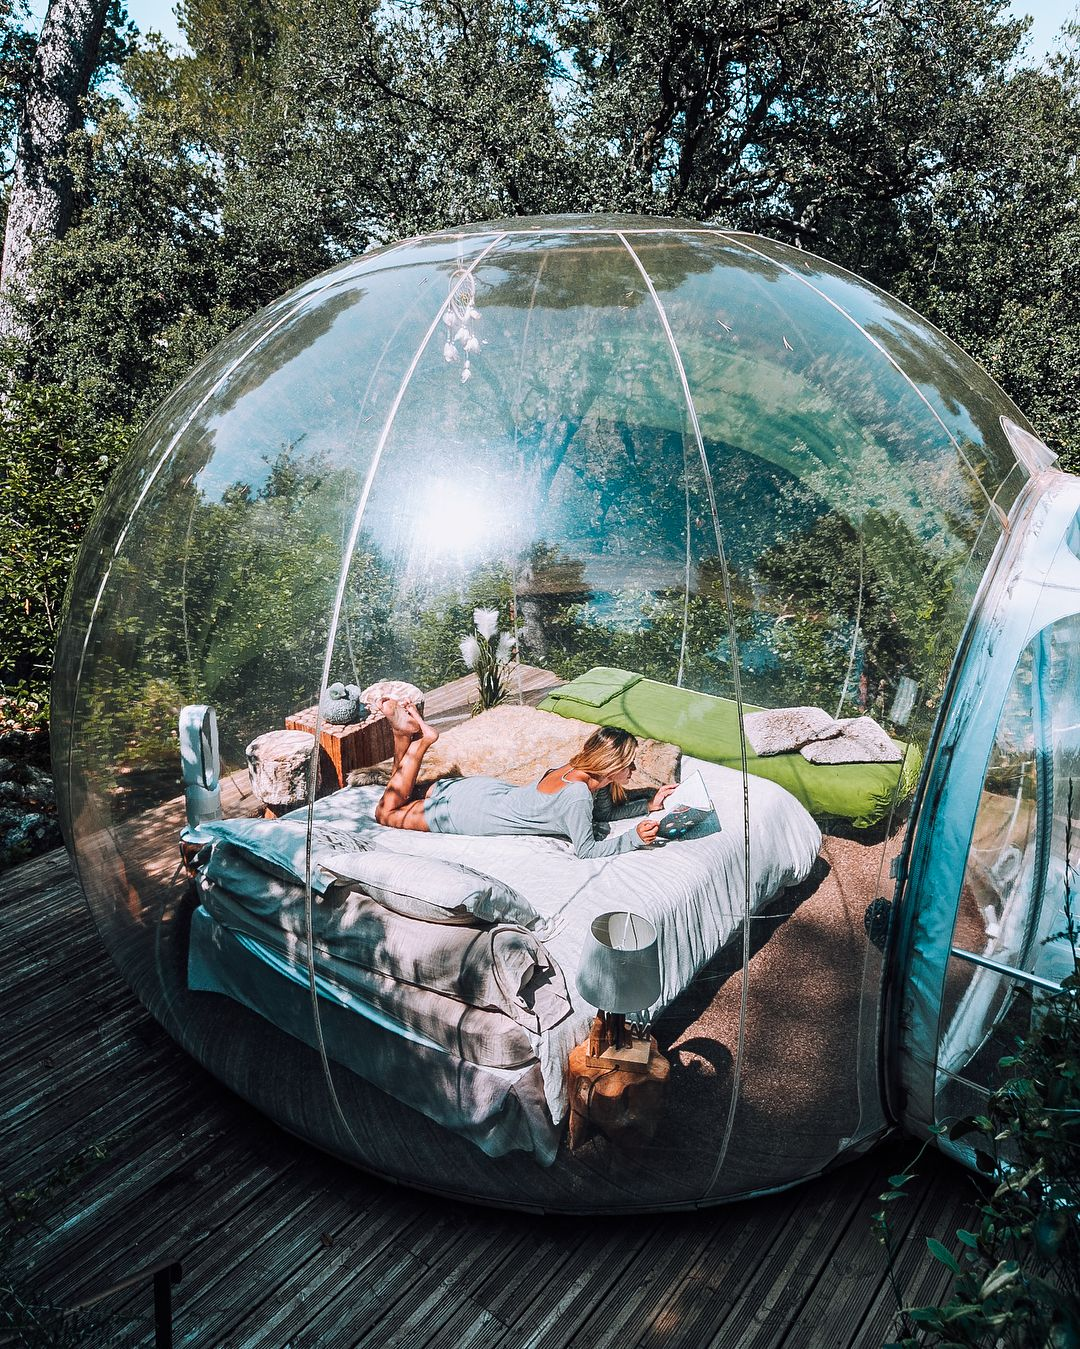 Bubble Hotel Attrap Reves Allauch France Sleep In A Bubble Under The Stars Bubble Tent Sleepover Room Outdoor